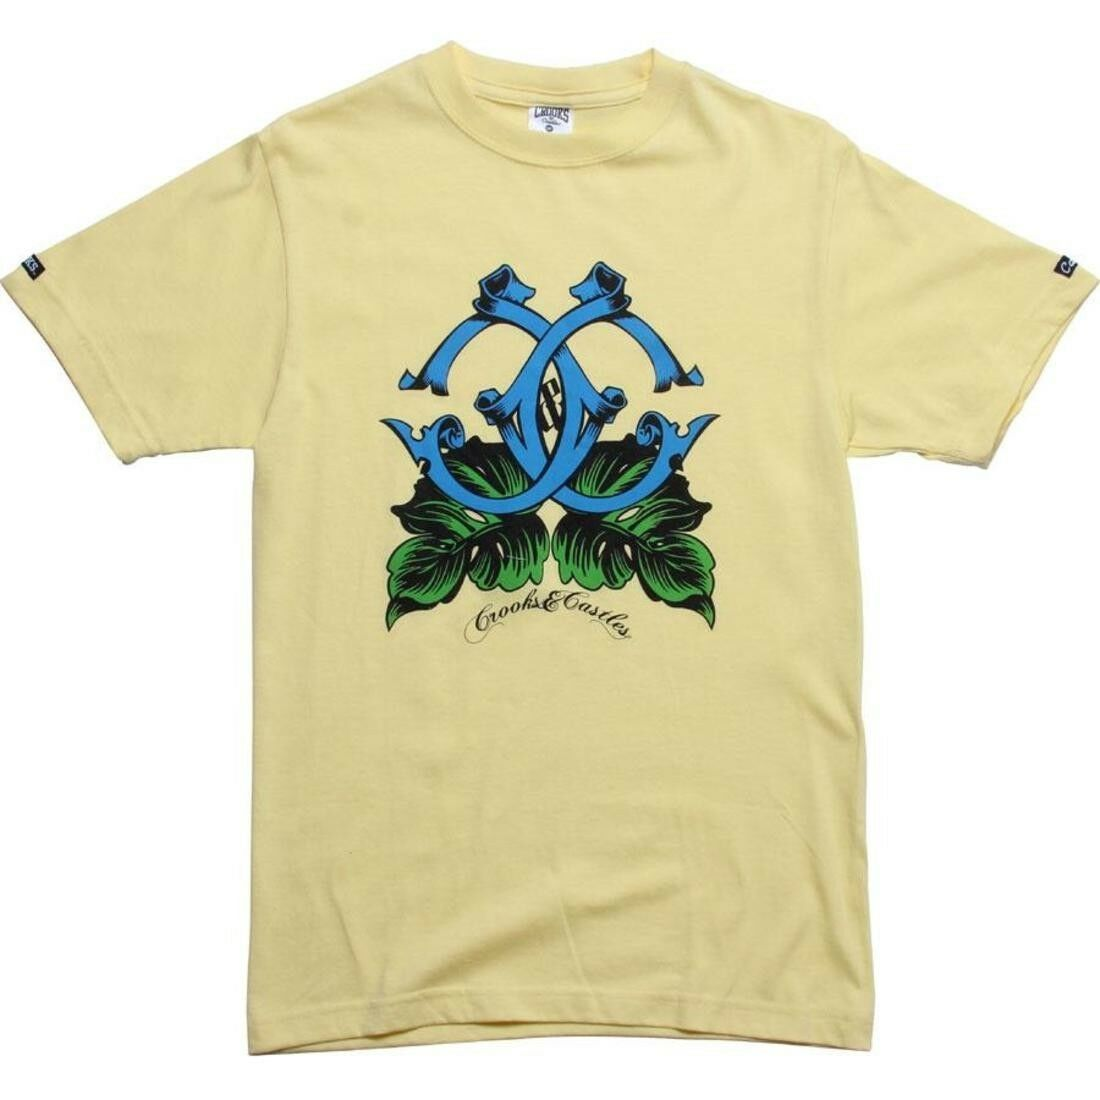 Crooks and Castles Island C;s Canary T Shirt 840706CAN